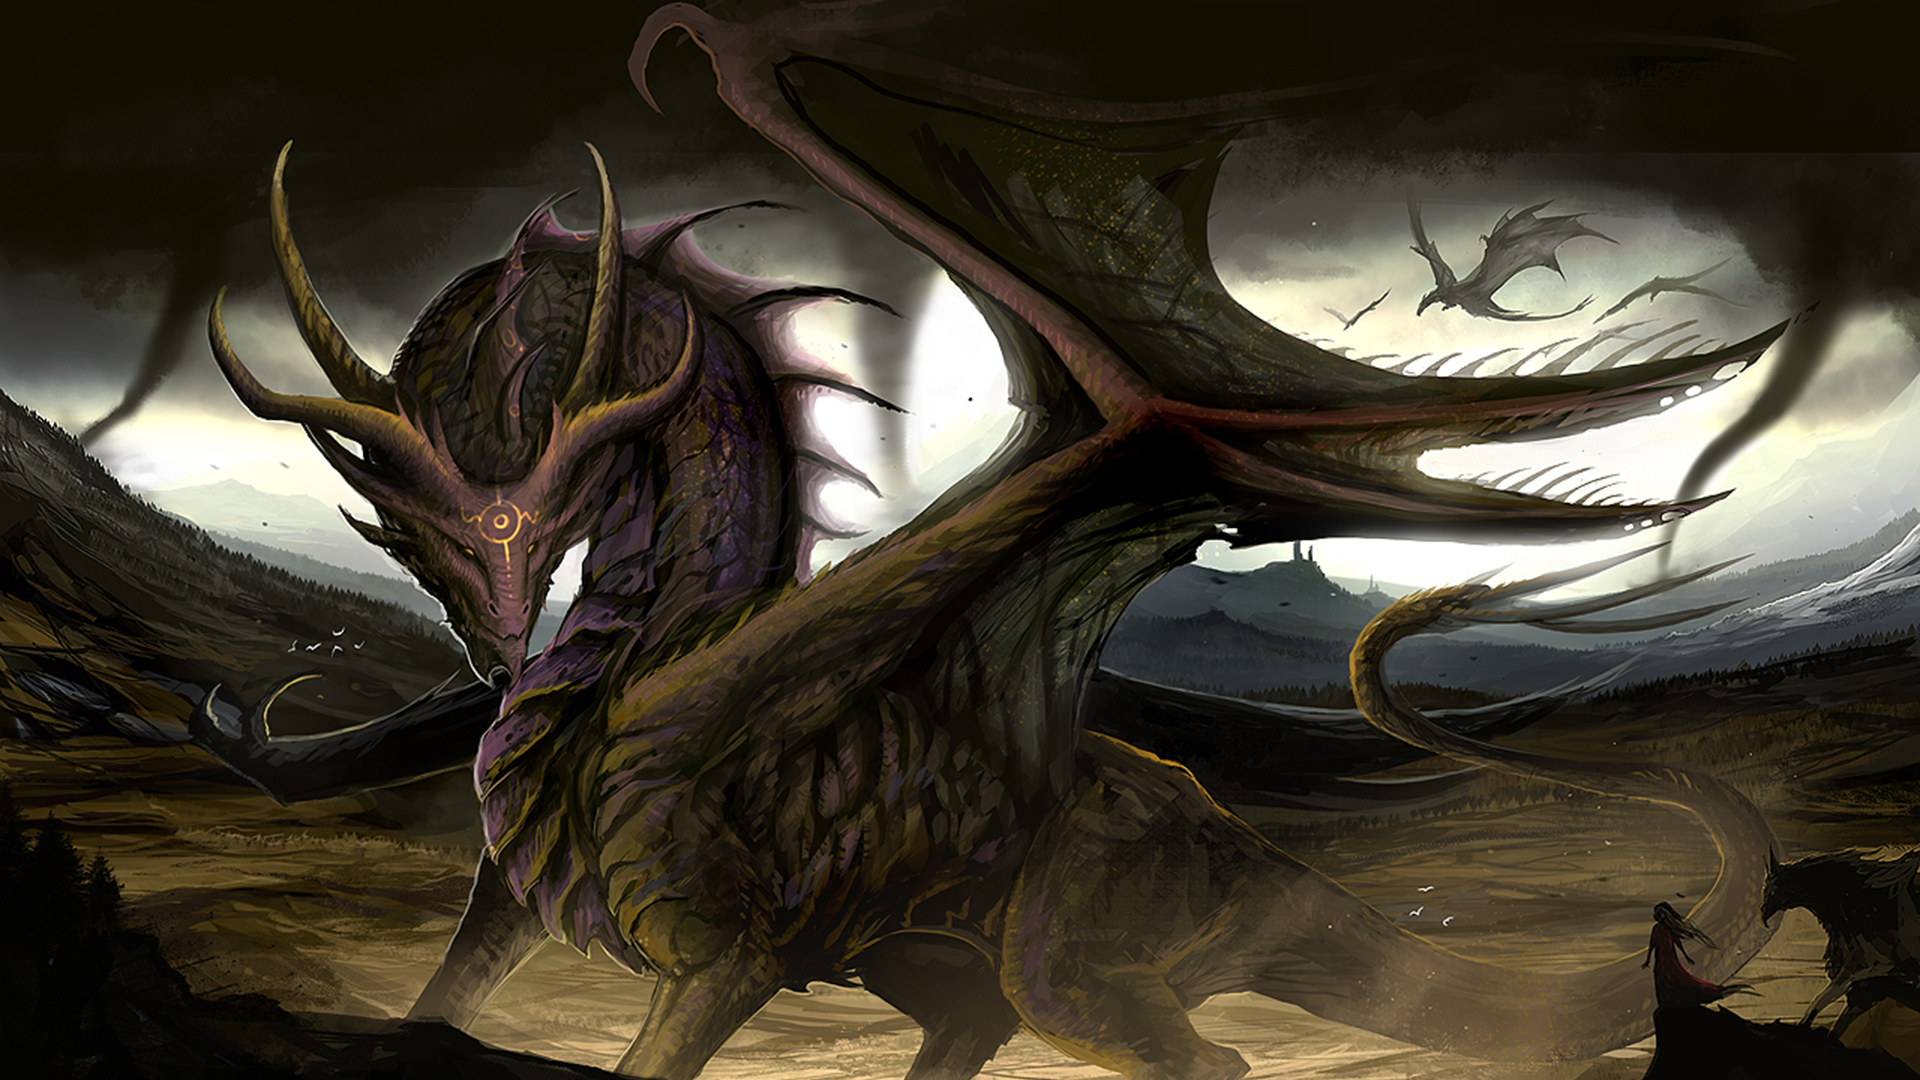 Dragon Wallpaper 3d Hd 1 Lord Of The Dragons Hd Wallpapers Background Images